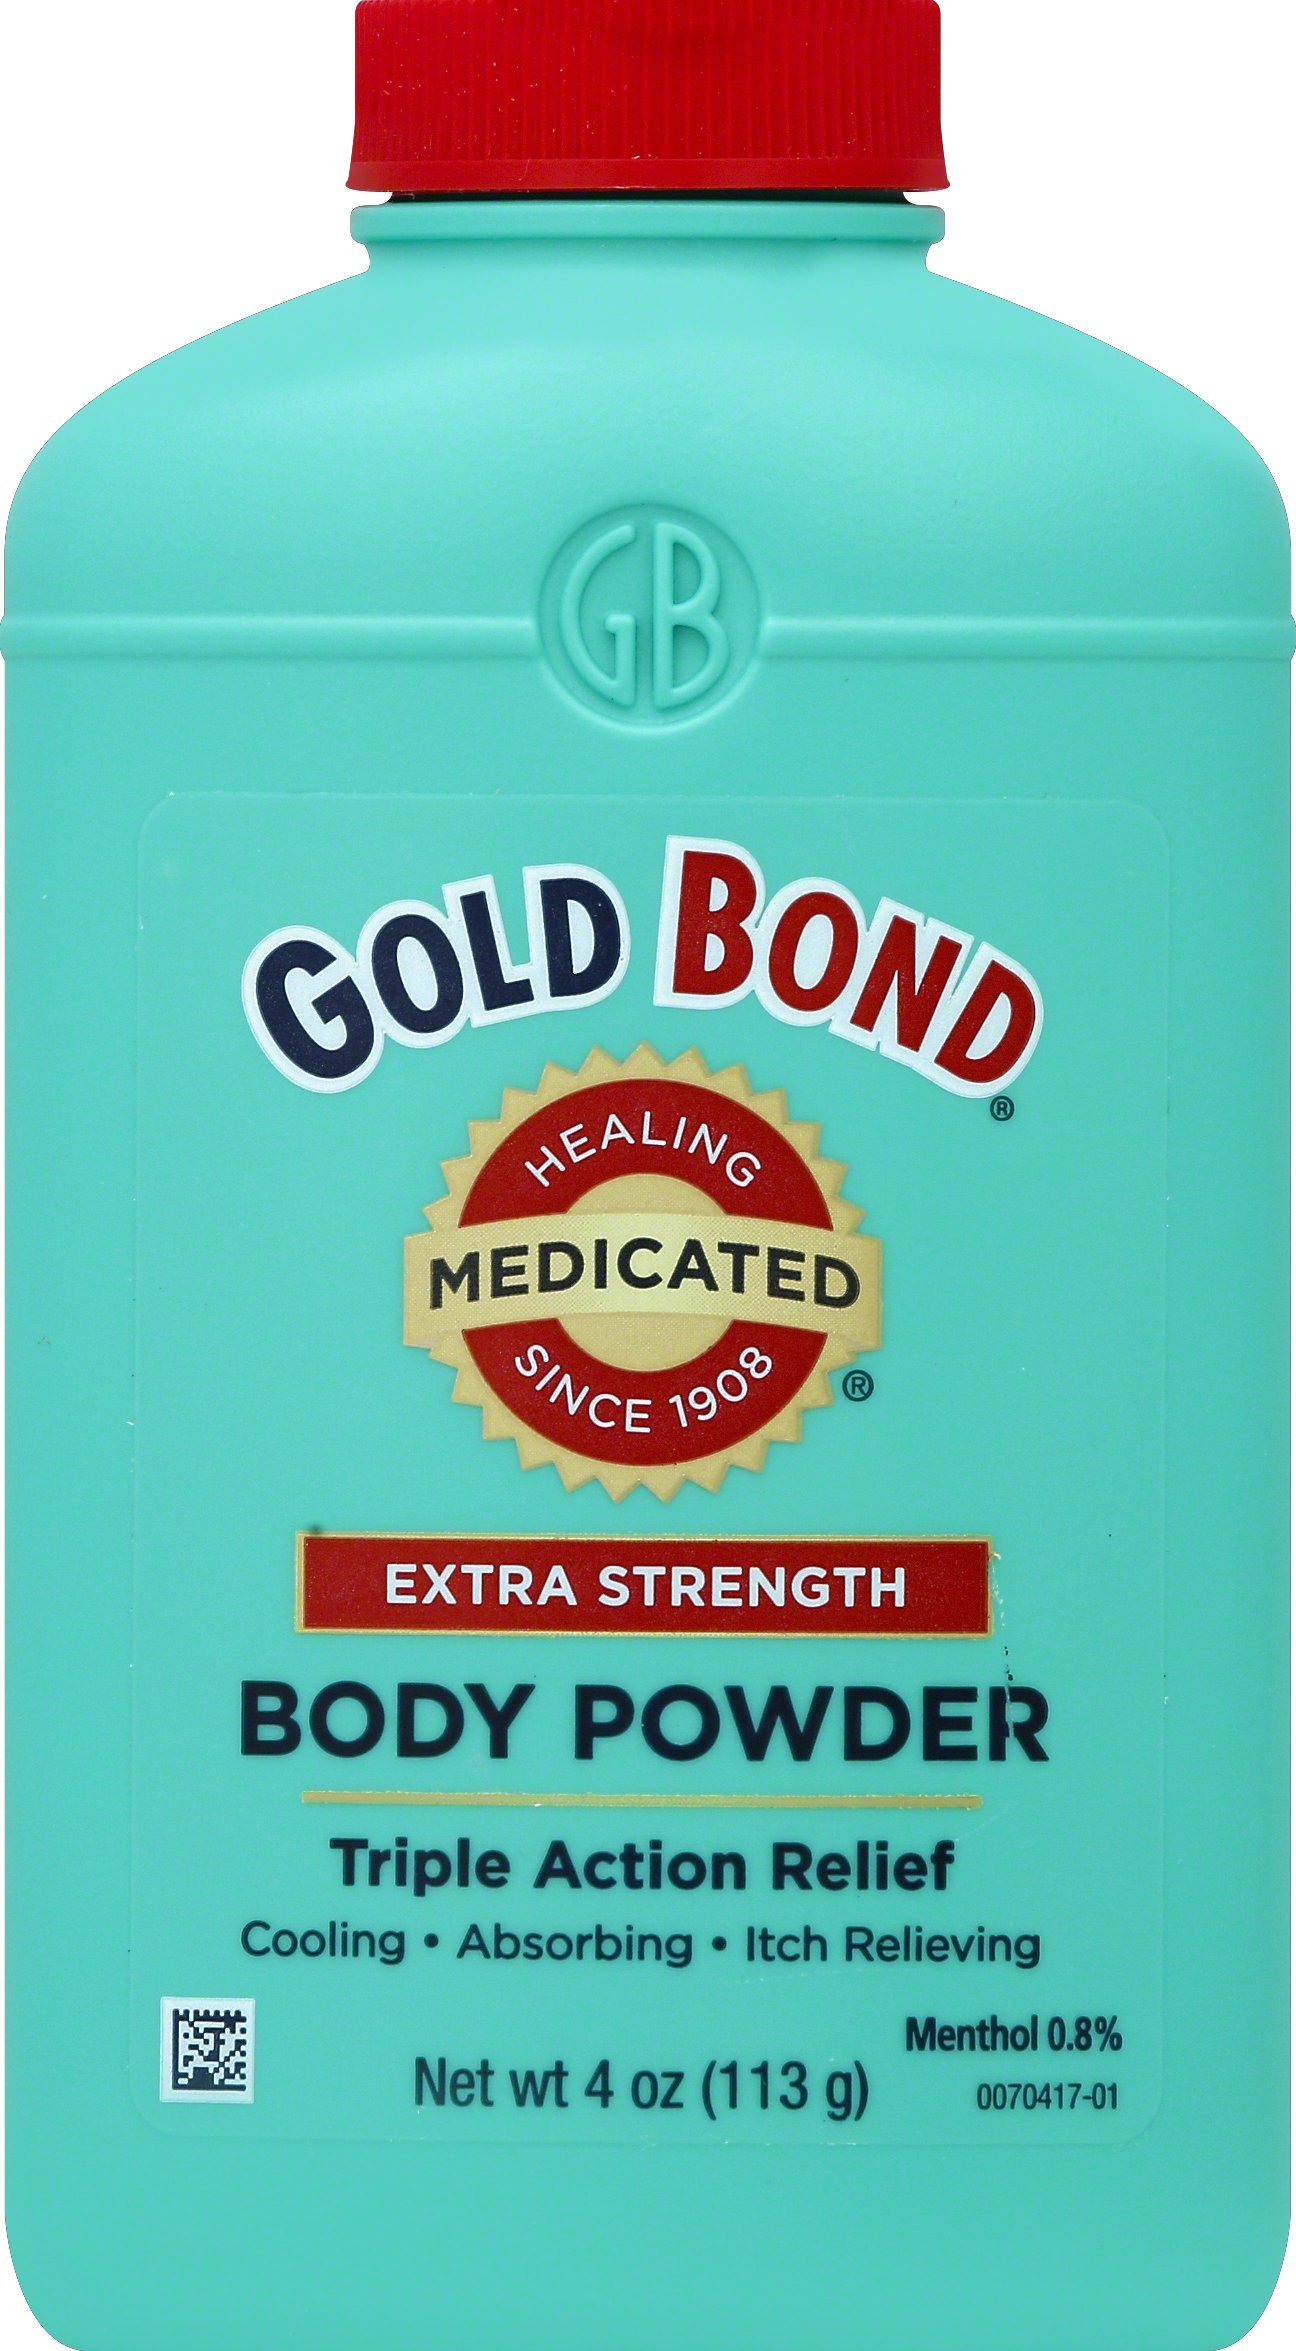 Gold Bond Medicated Body Powder, Extra Strength, 4 oz Shaker by Gold Bond